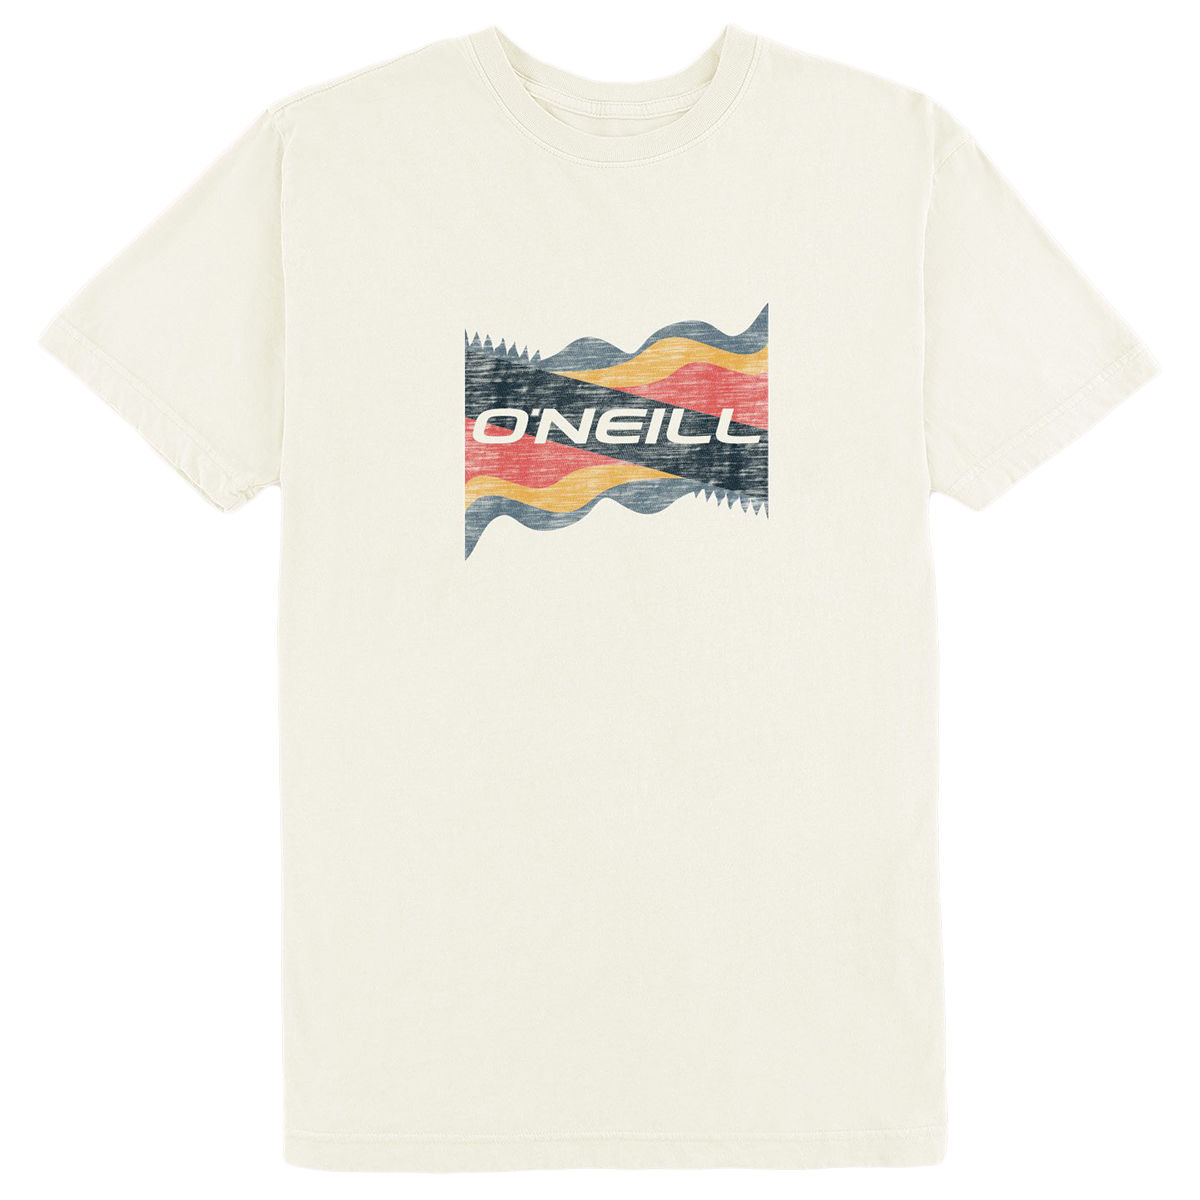 O'neill Men's Liquid Dream  Short-Sleeve Tee - White, XL